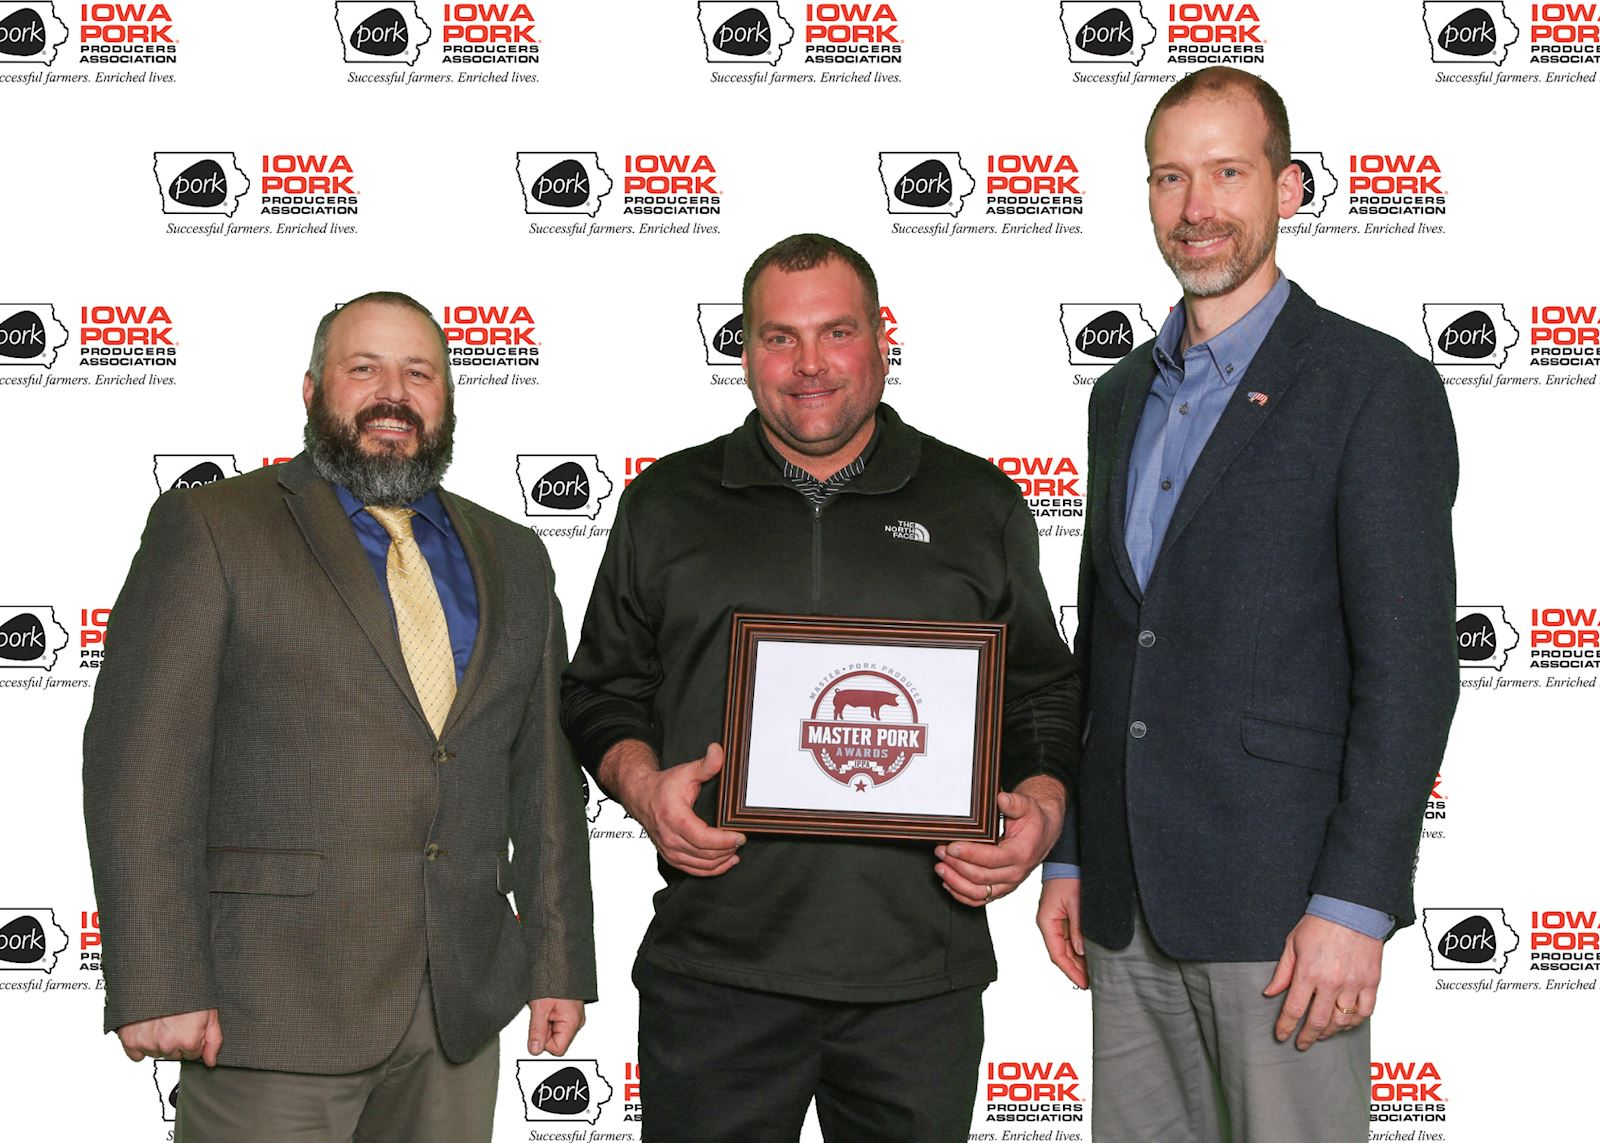 Schmidt is named Iowa Master Pork Producer